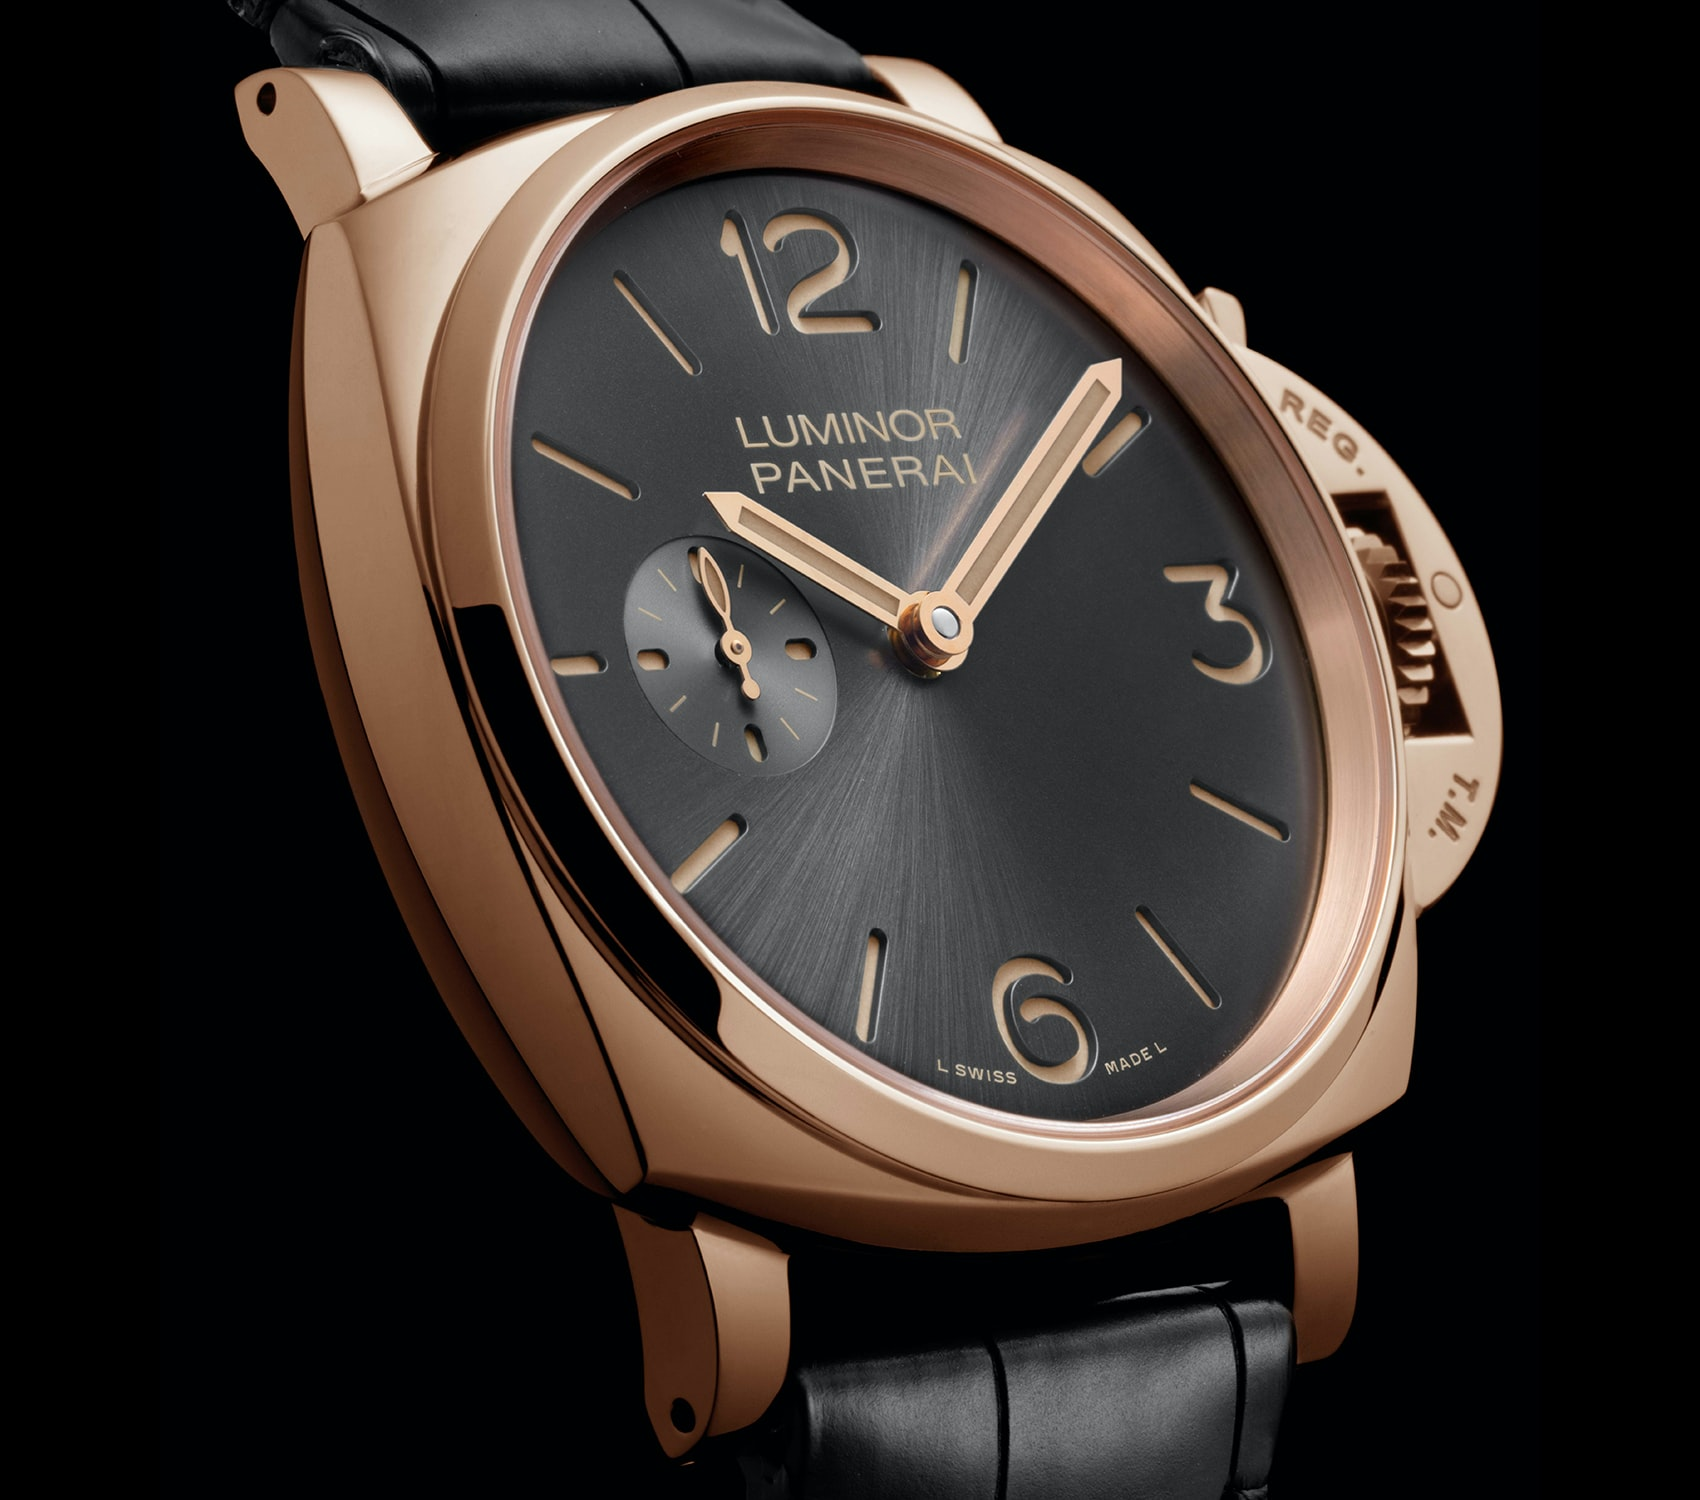 Introducing: The New Panerai Luminor 'Due,' Watches Officially Debuted At The 'Dive Into Time' Exhibition In Florence (Live Pics, Pricing & Availability) Introducing: The New Panerai Luminor 'Due,' Watches Officially Debuted At The 'Dive Into Time' Exhibition In Florence (Live Pics, Pricing & Availability) new g